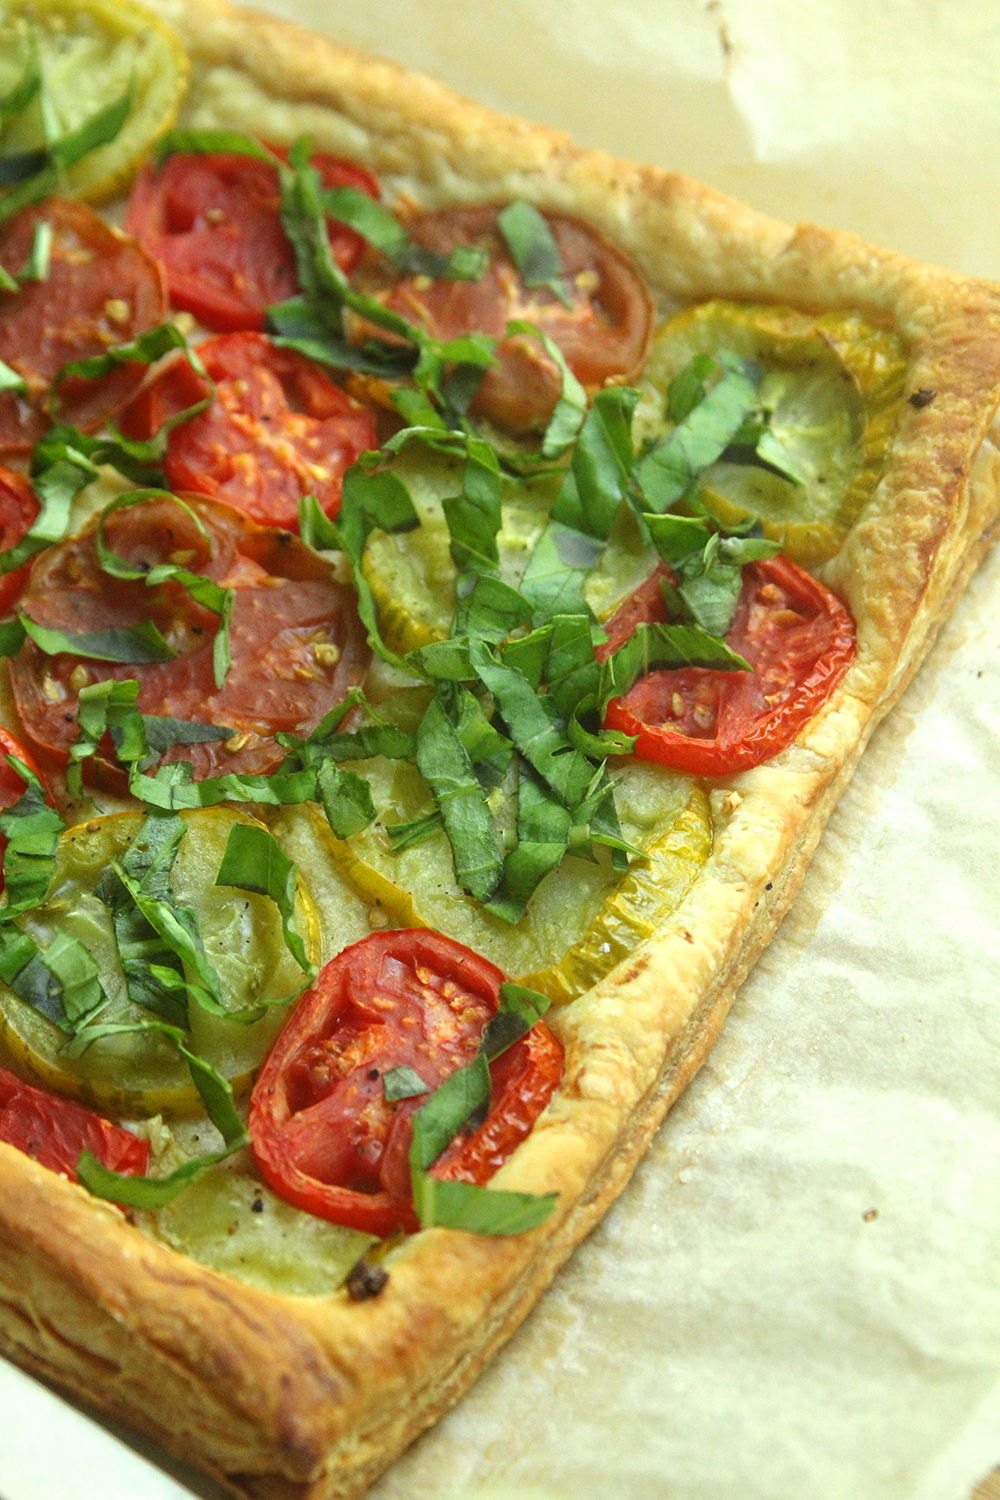 Fresh tomatoes, garlic, olive oil and wisps of basil make this flaky, sweet, bright Tomato Basil Tart brilliant. And it's easy to make!